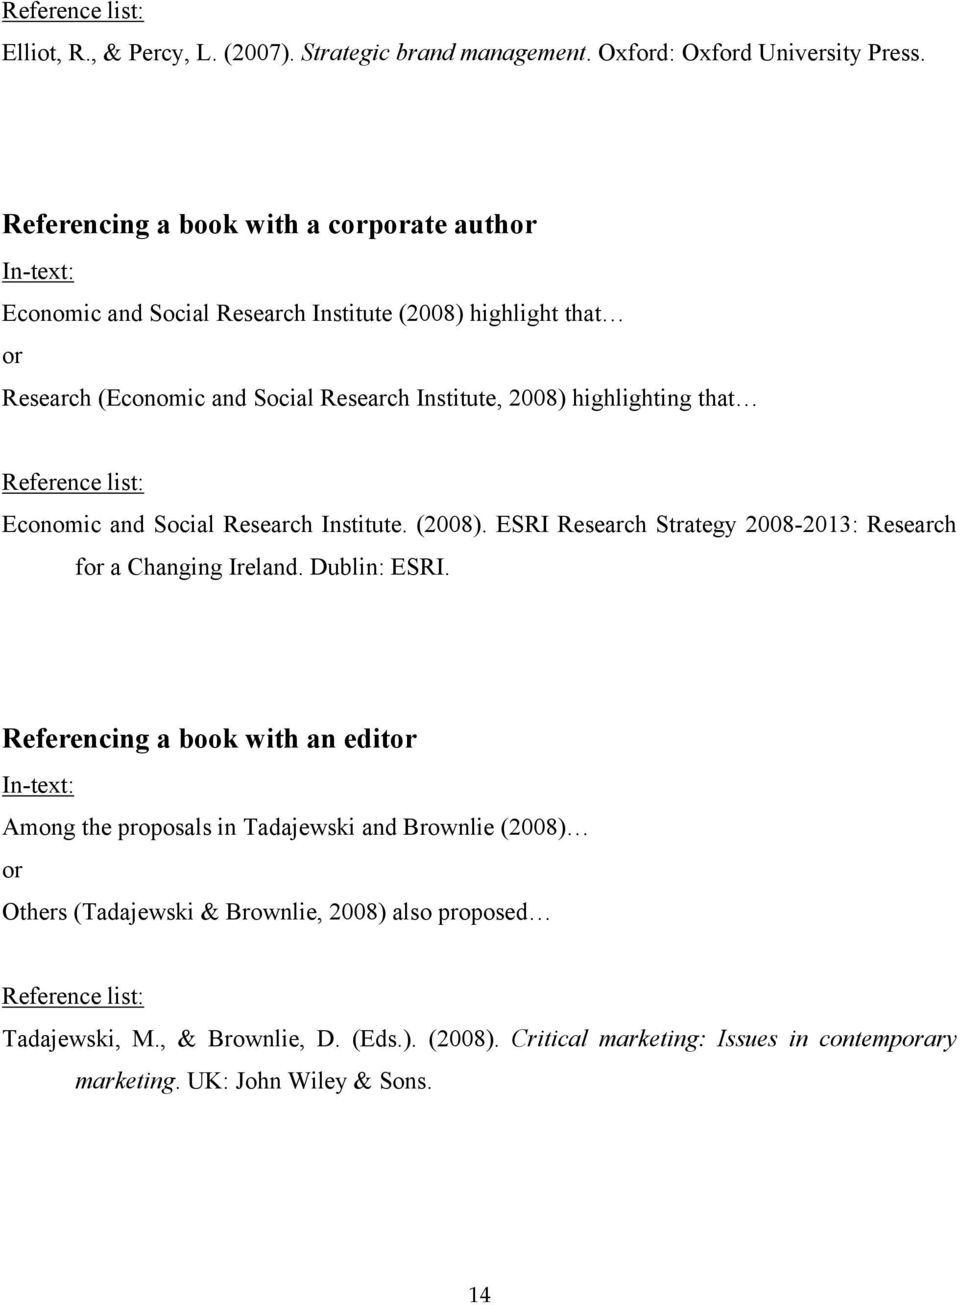 highlighting that Economic and Social Research Institute. (2008). ESRI Research Strategy 2008-2013: Research for a Changing Ireland. Dublin: ESRI.